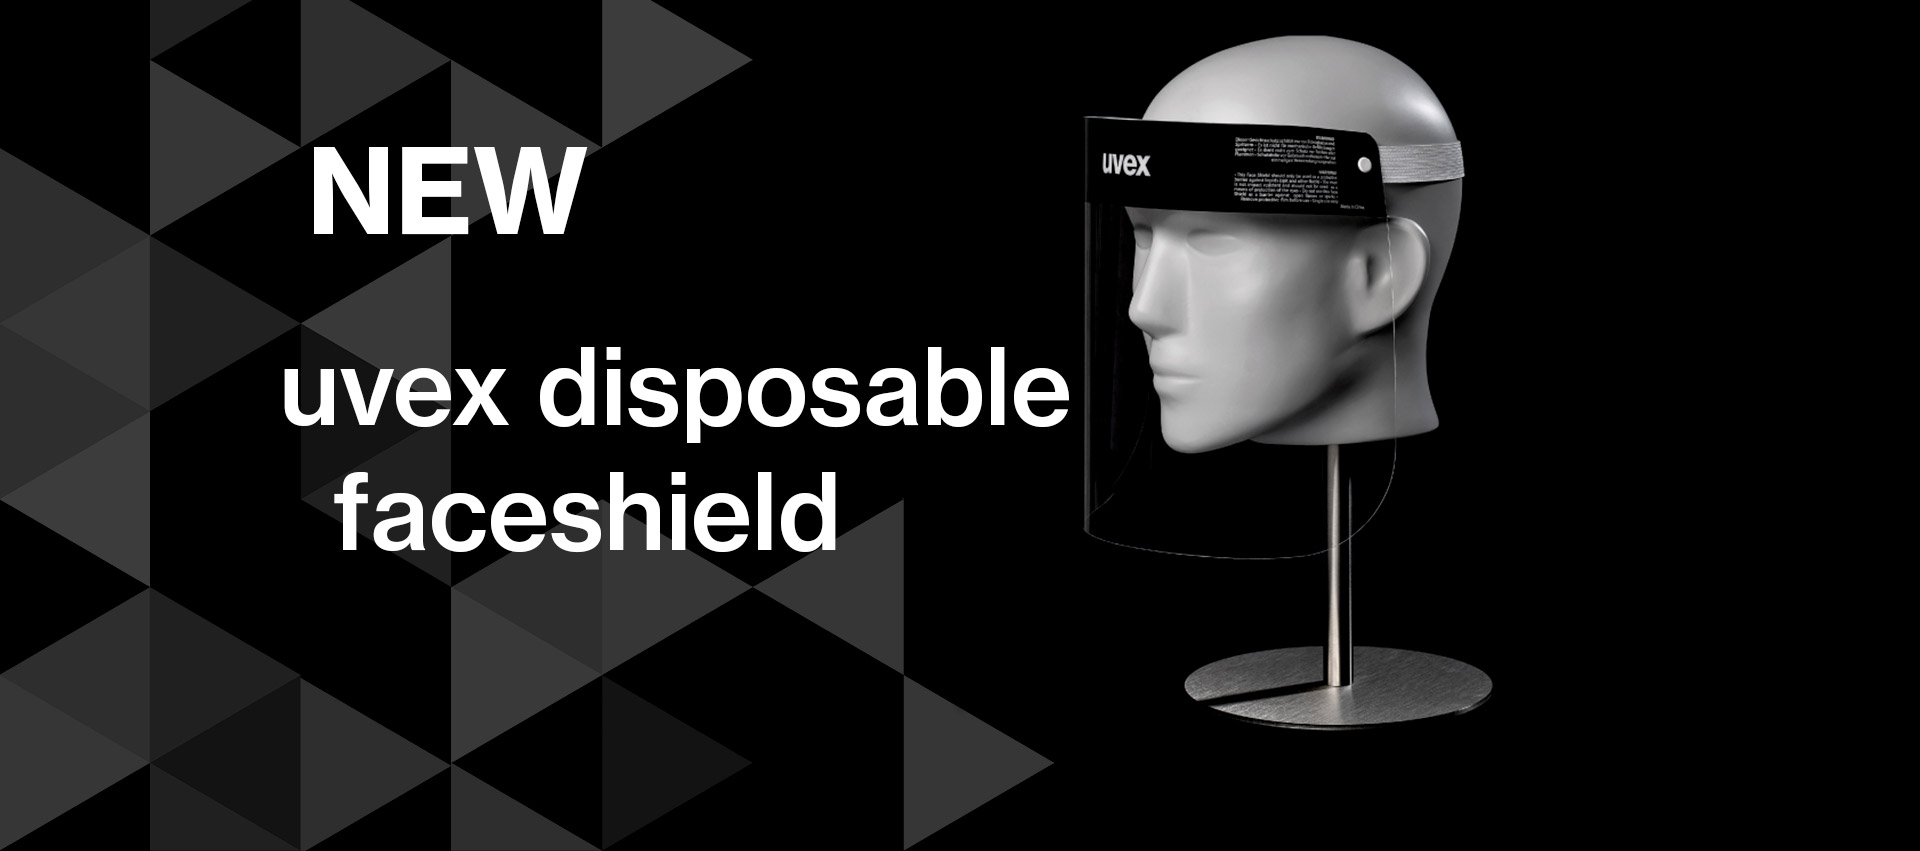 New uvex disposable faceshield